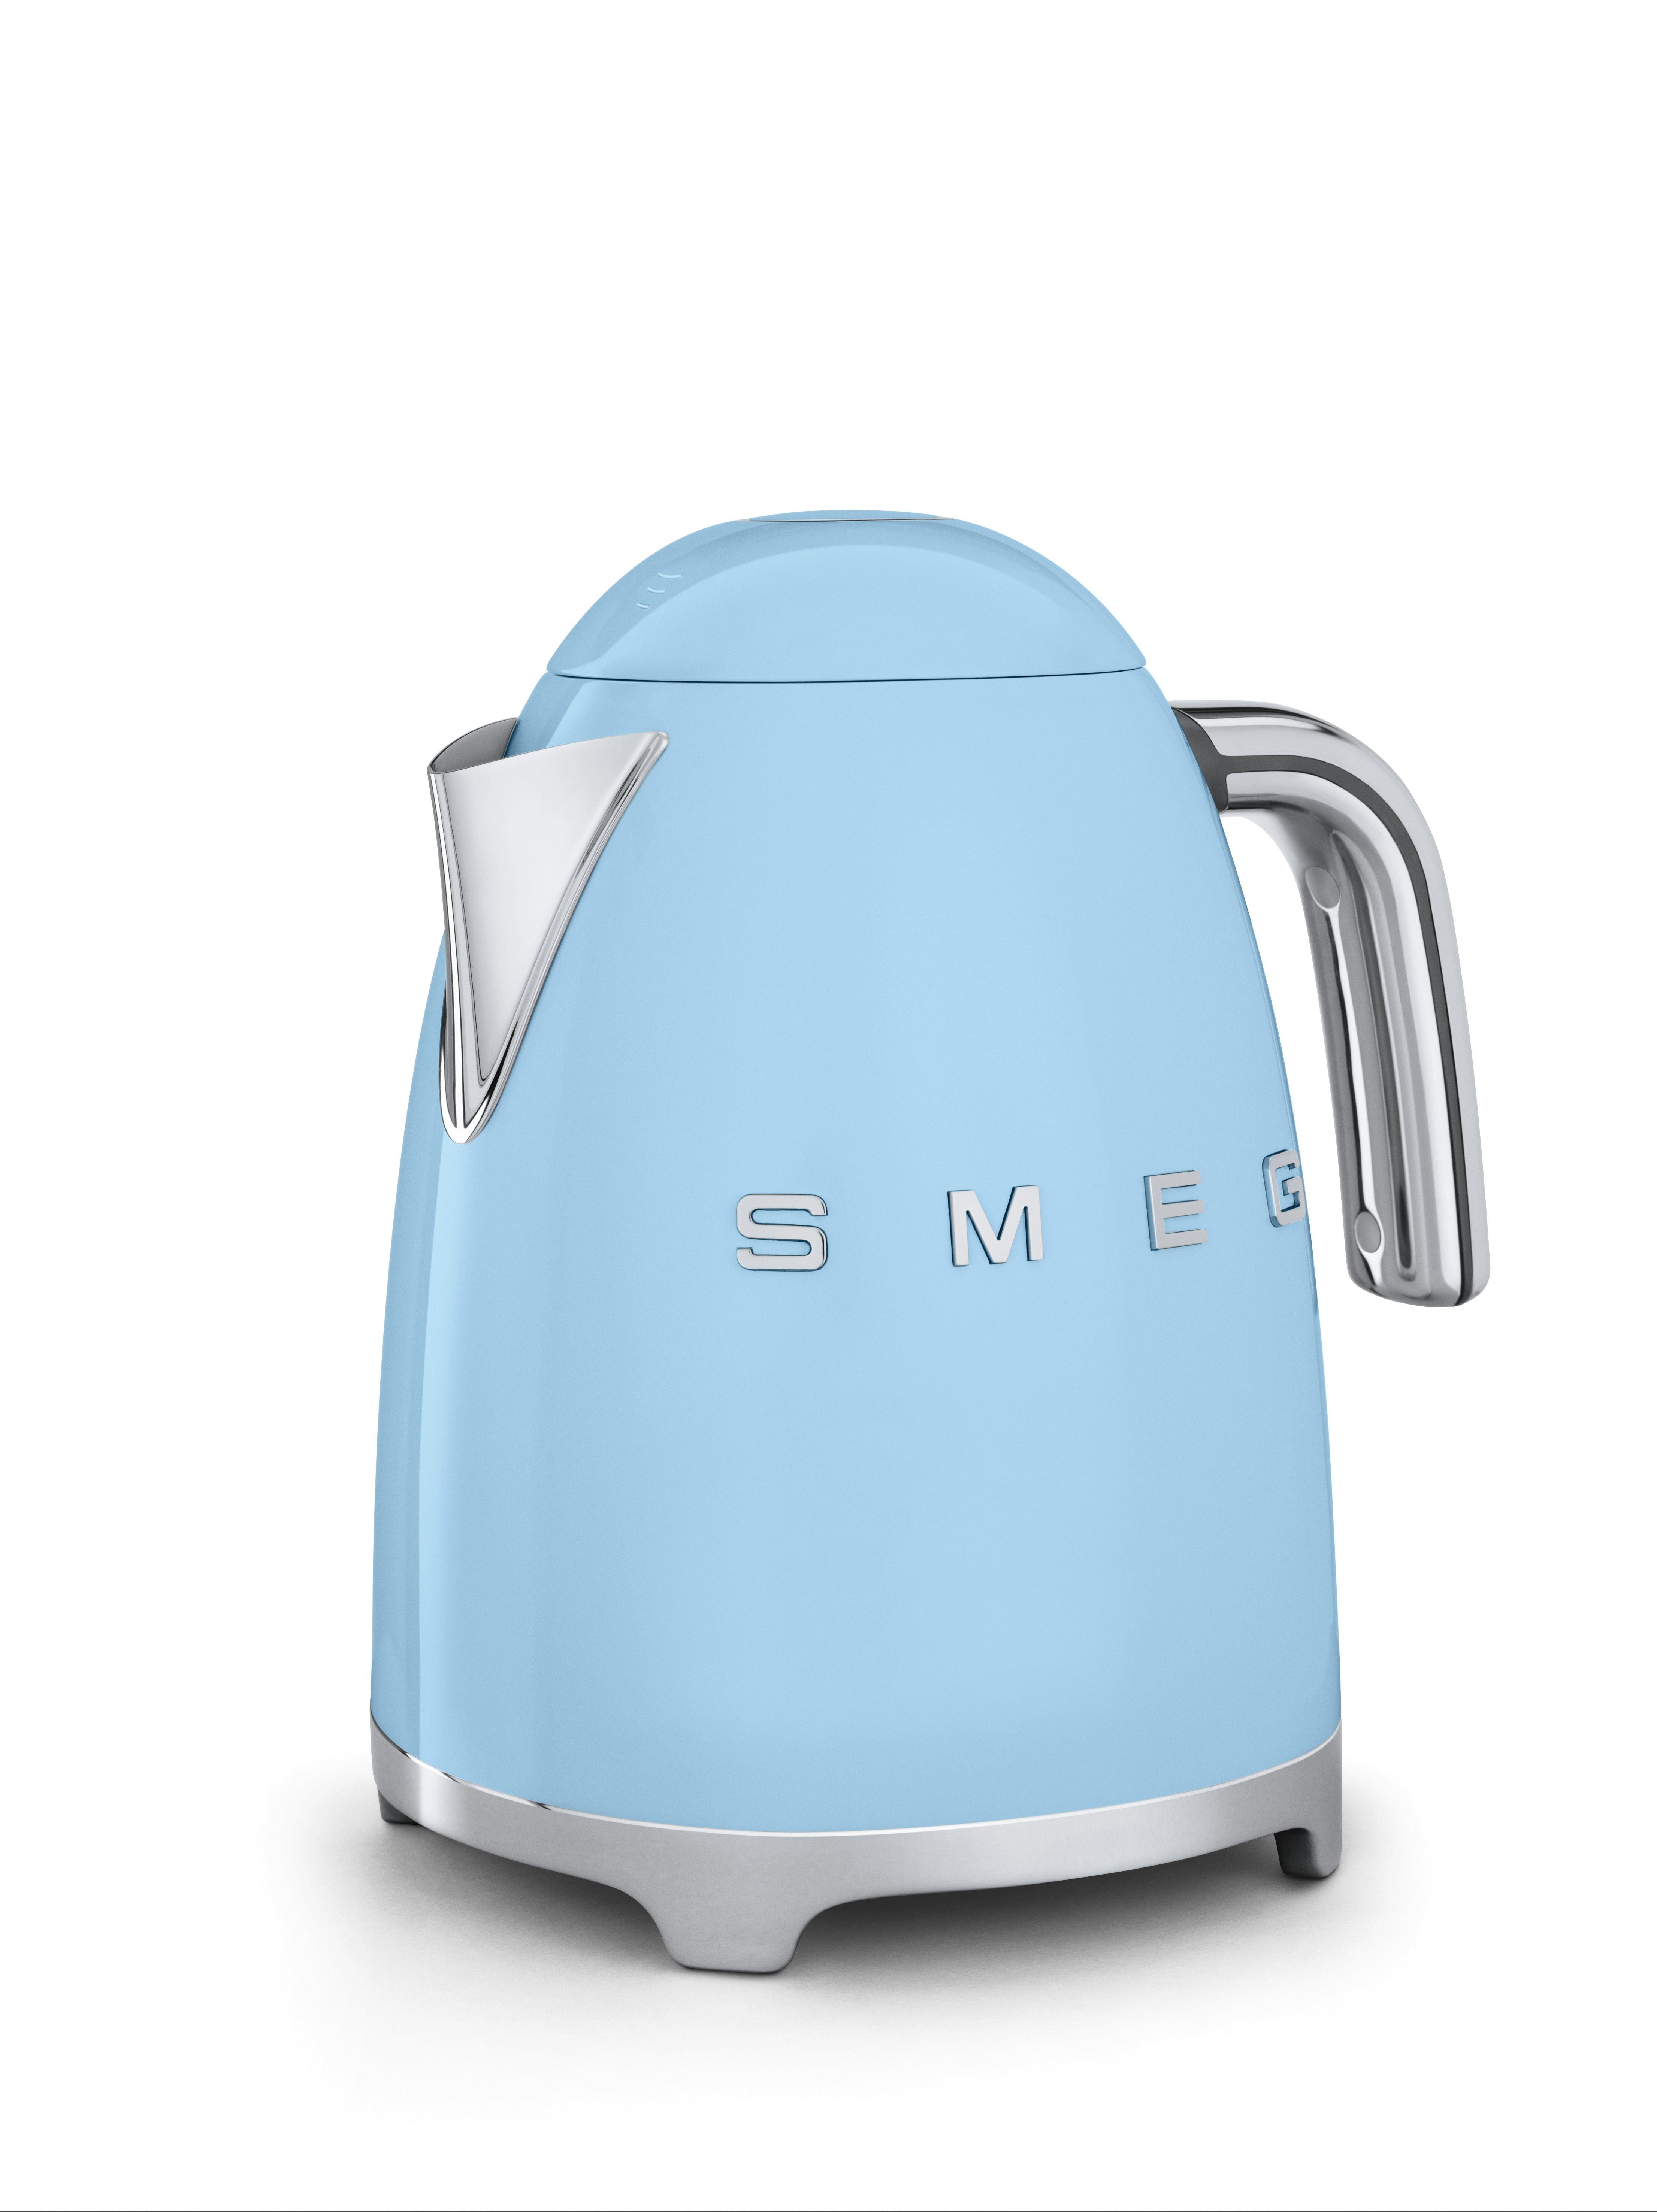 Beautiful smeg kettle in a pale blue smeg small